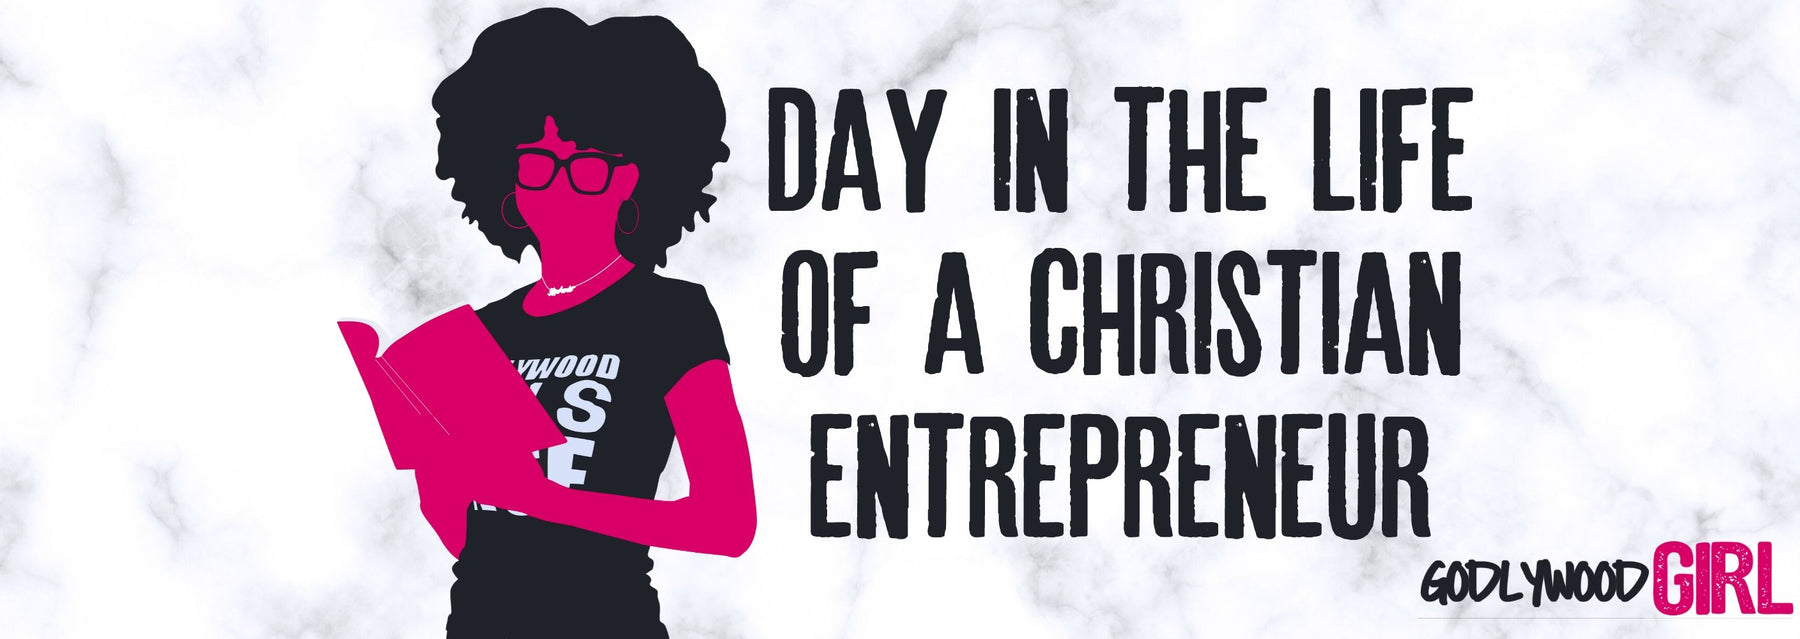 Day In The Life Of A Christian Entrepreneur Ep.26 | Day In the Life Of An Internet Entrepreneur